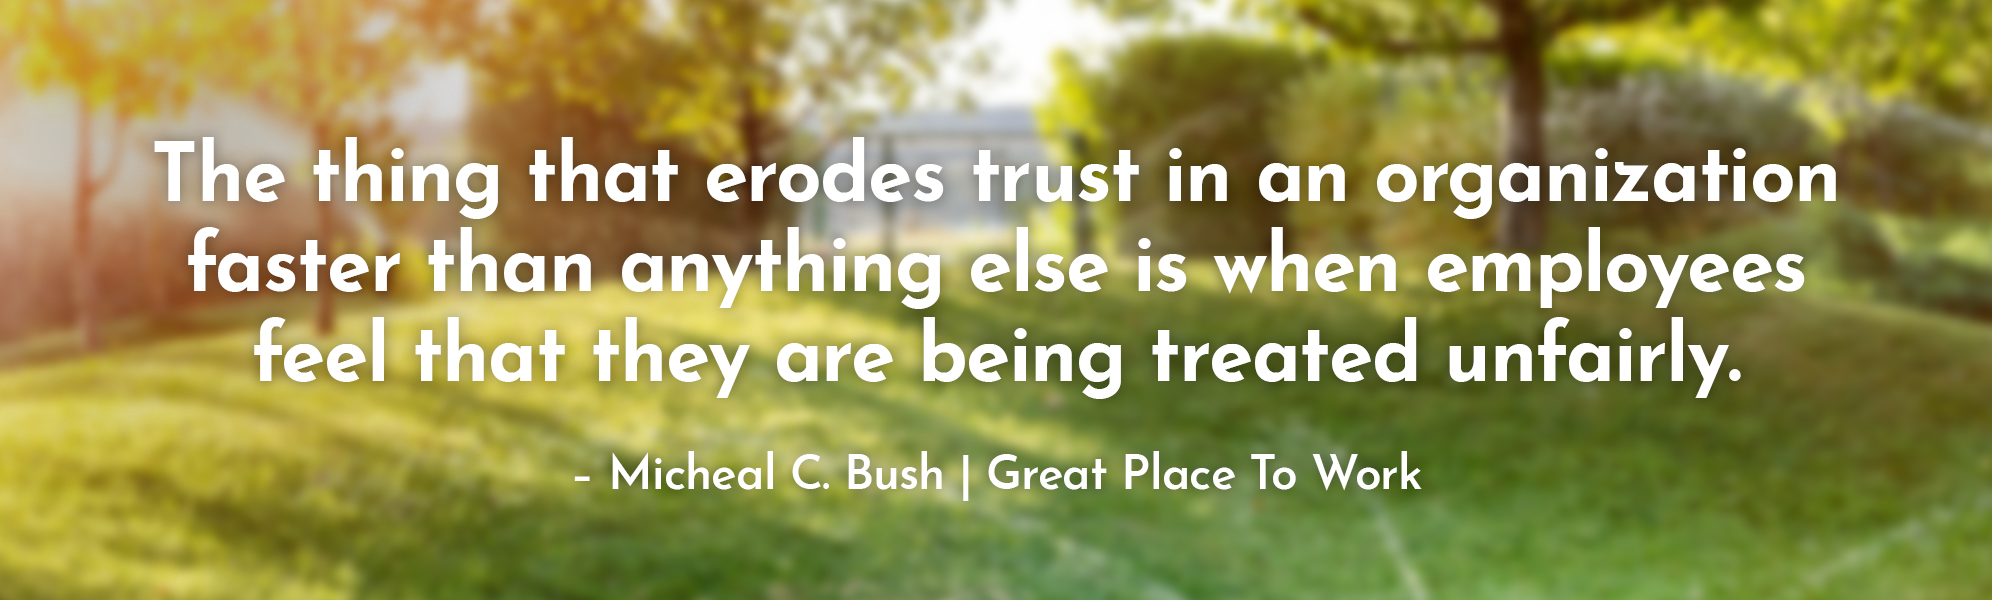 """The thing that erodes trust in an organization faster than anything else is when employees feel that they are being treated unfairly."" – Micheal C. Bush 